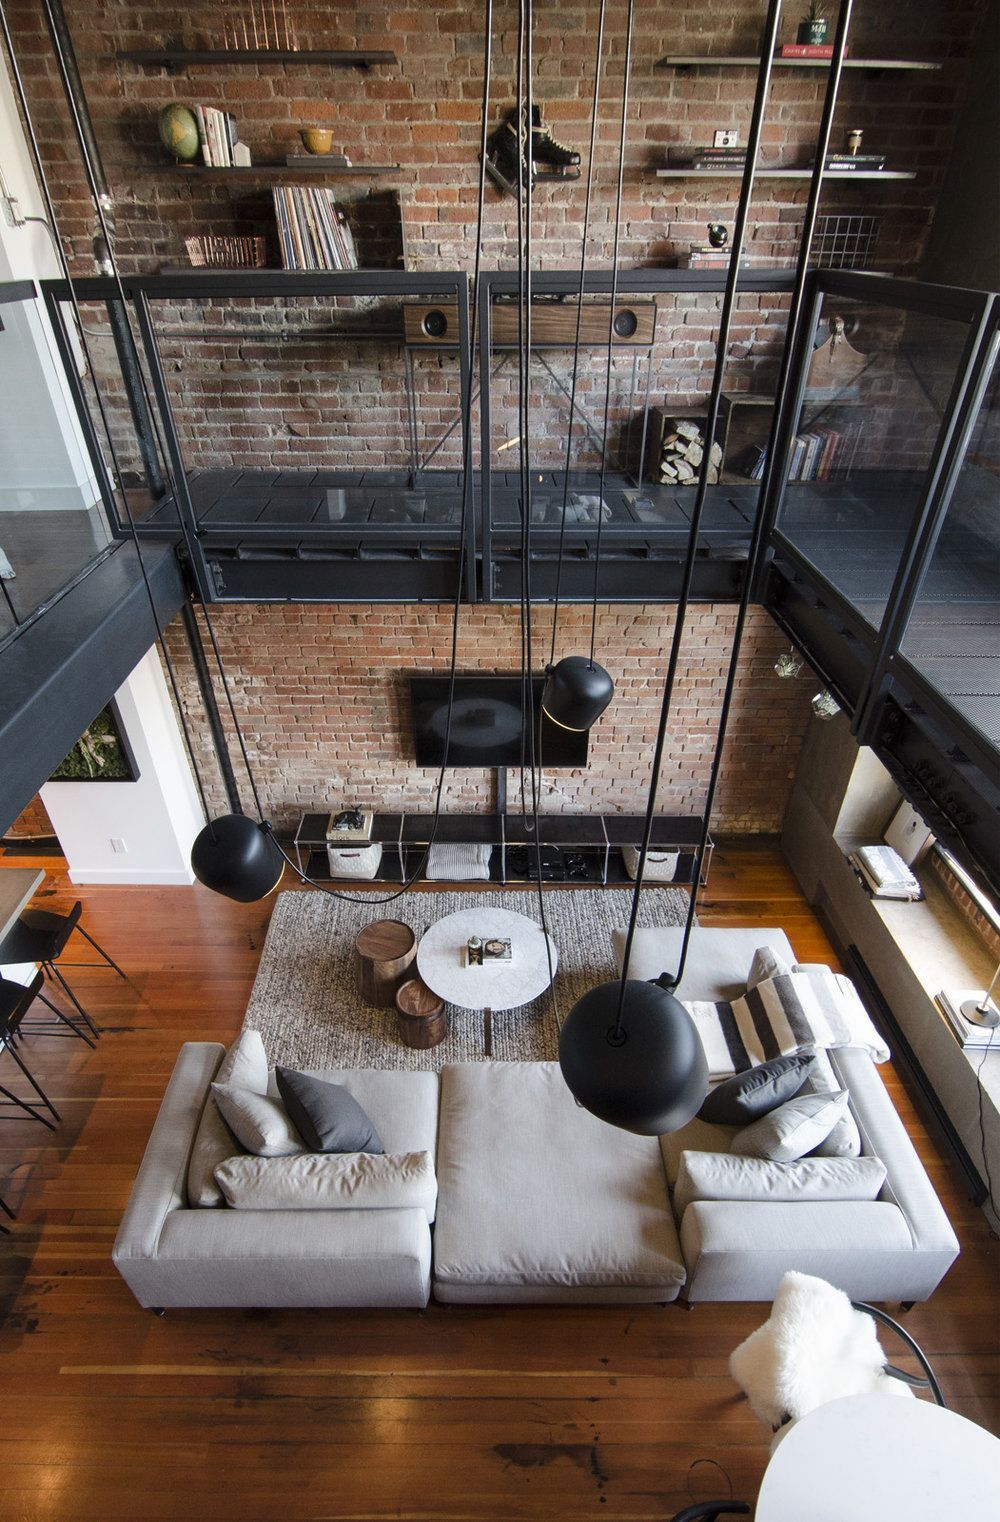 Loft apartment styled by kyla ray port quarter interiors vancouver bc